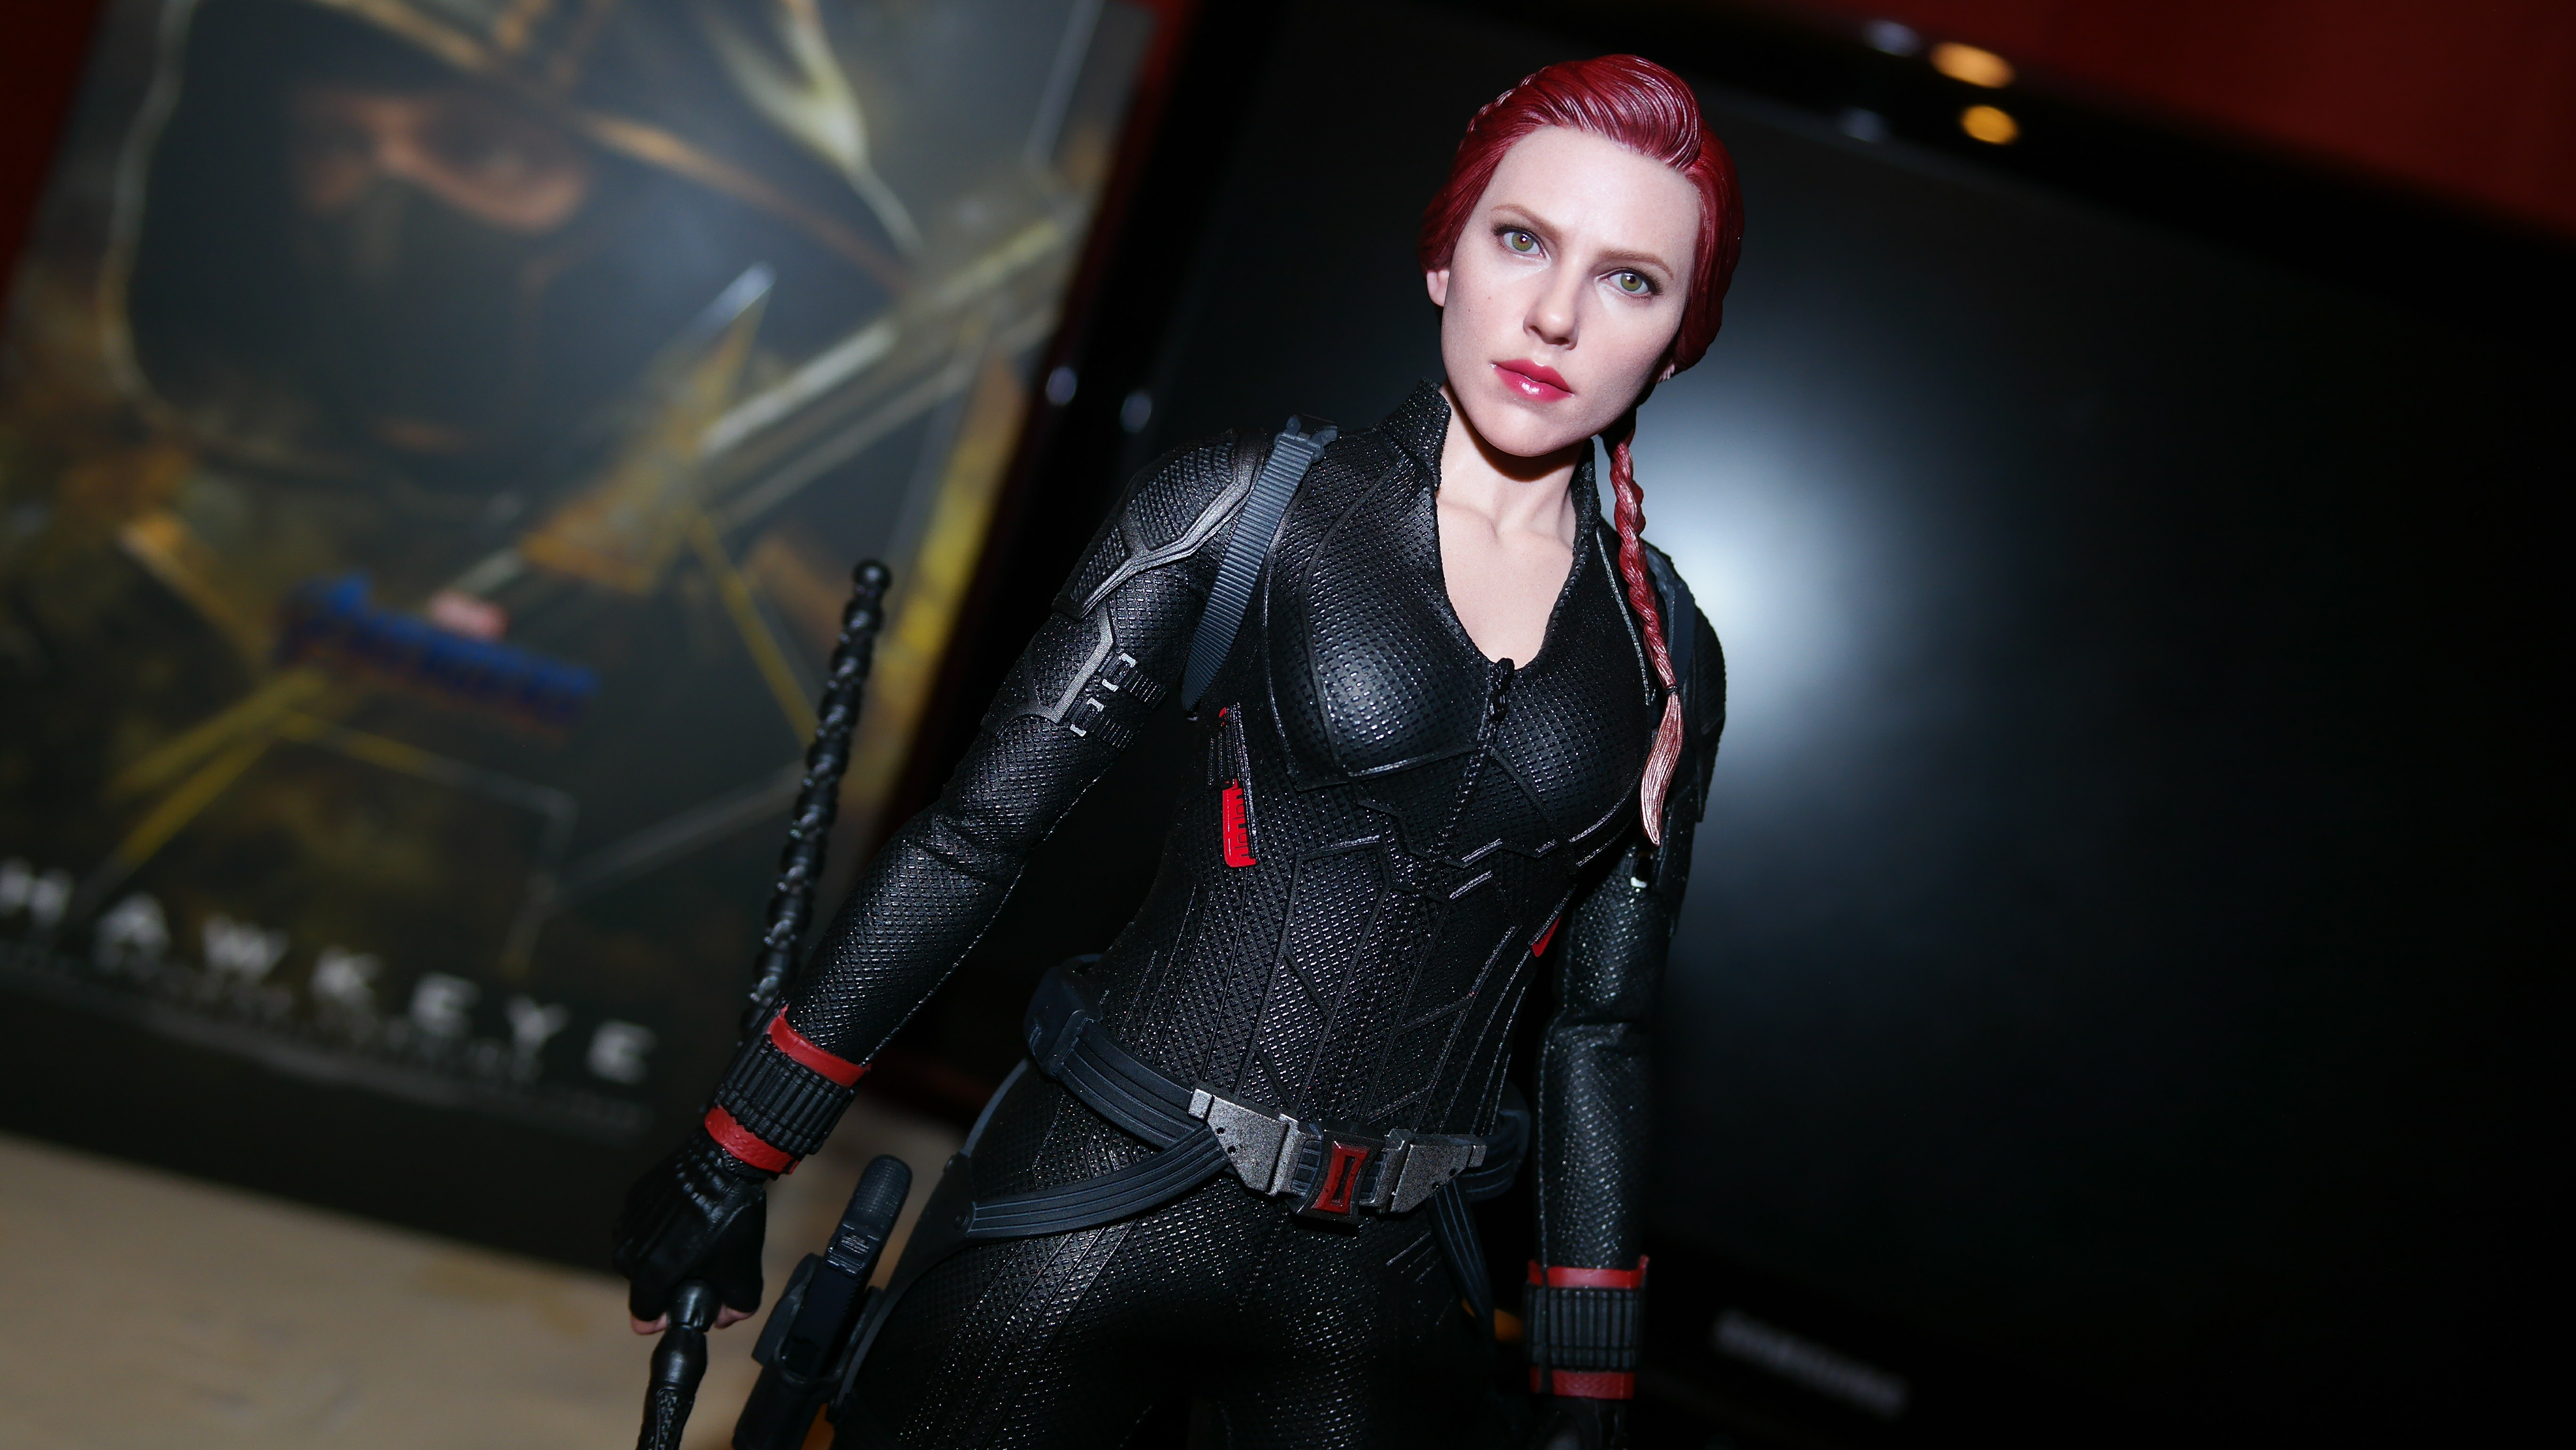 Hot Toys Review Black Widow Avengers Endgame Future Of The Force